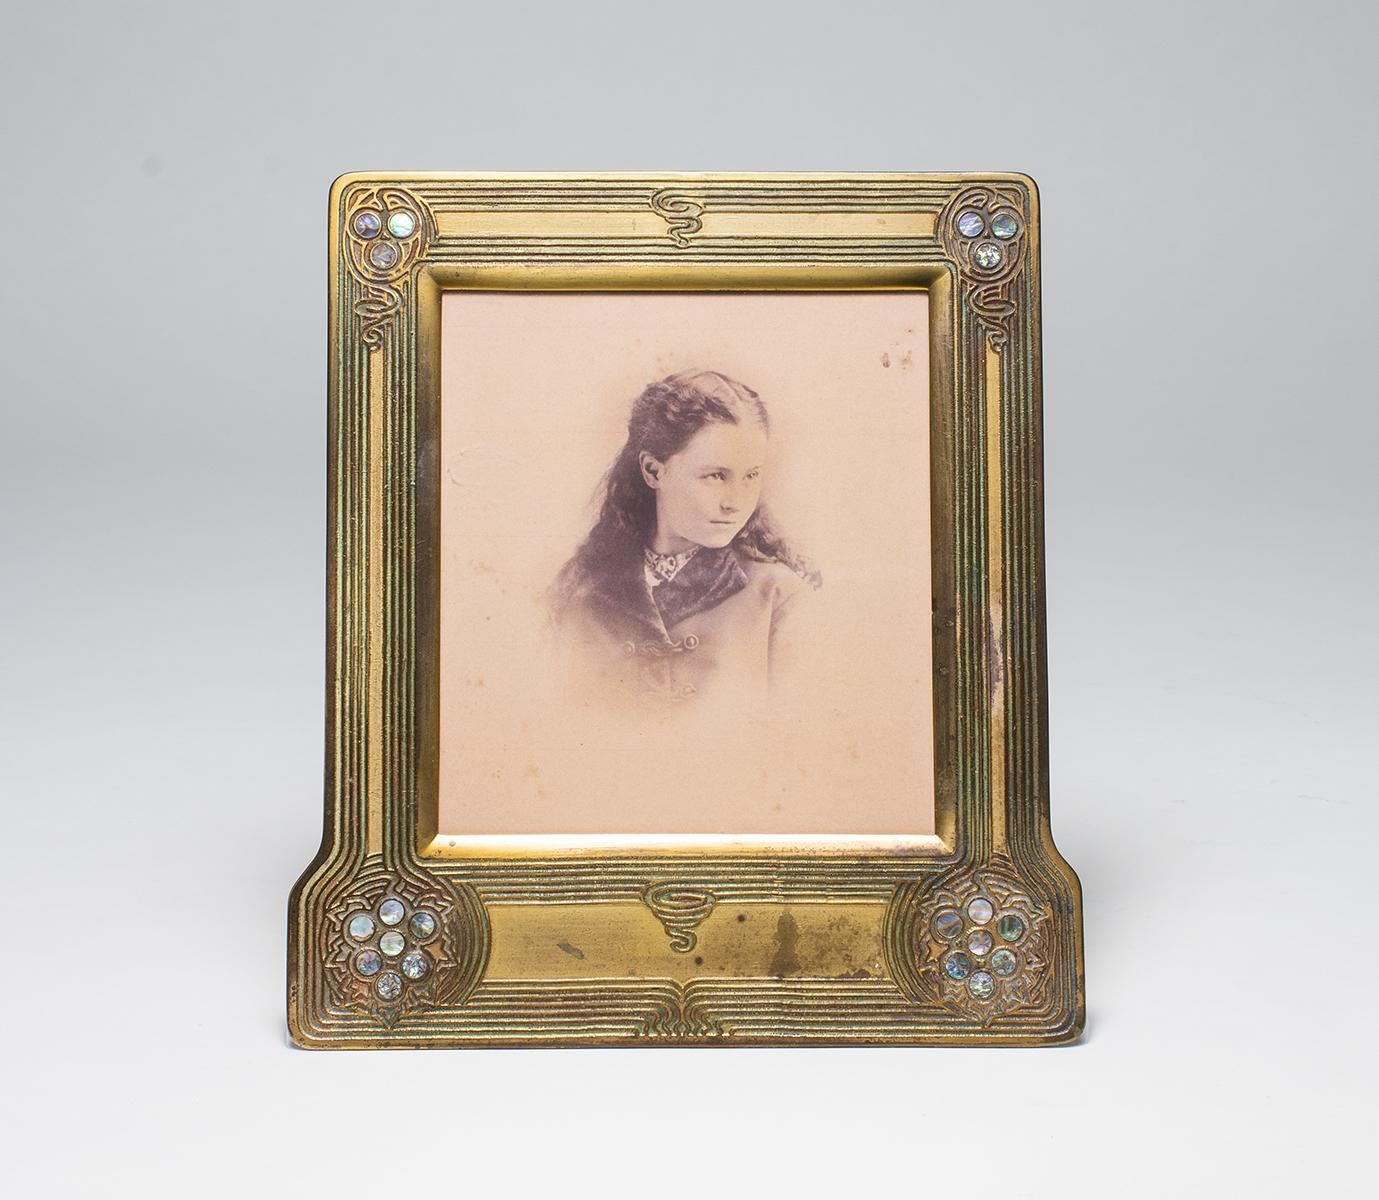 Tiffany Studios Abalone Picture Frame 1